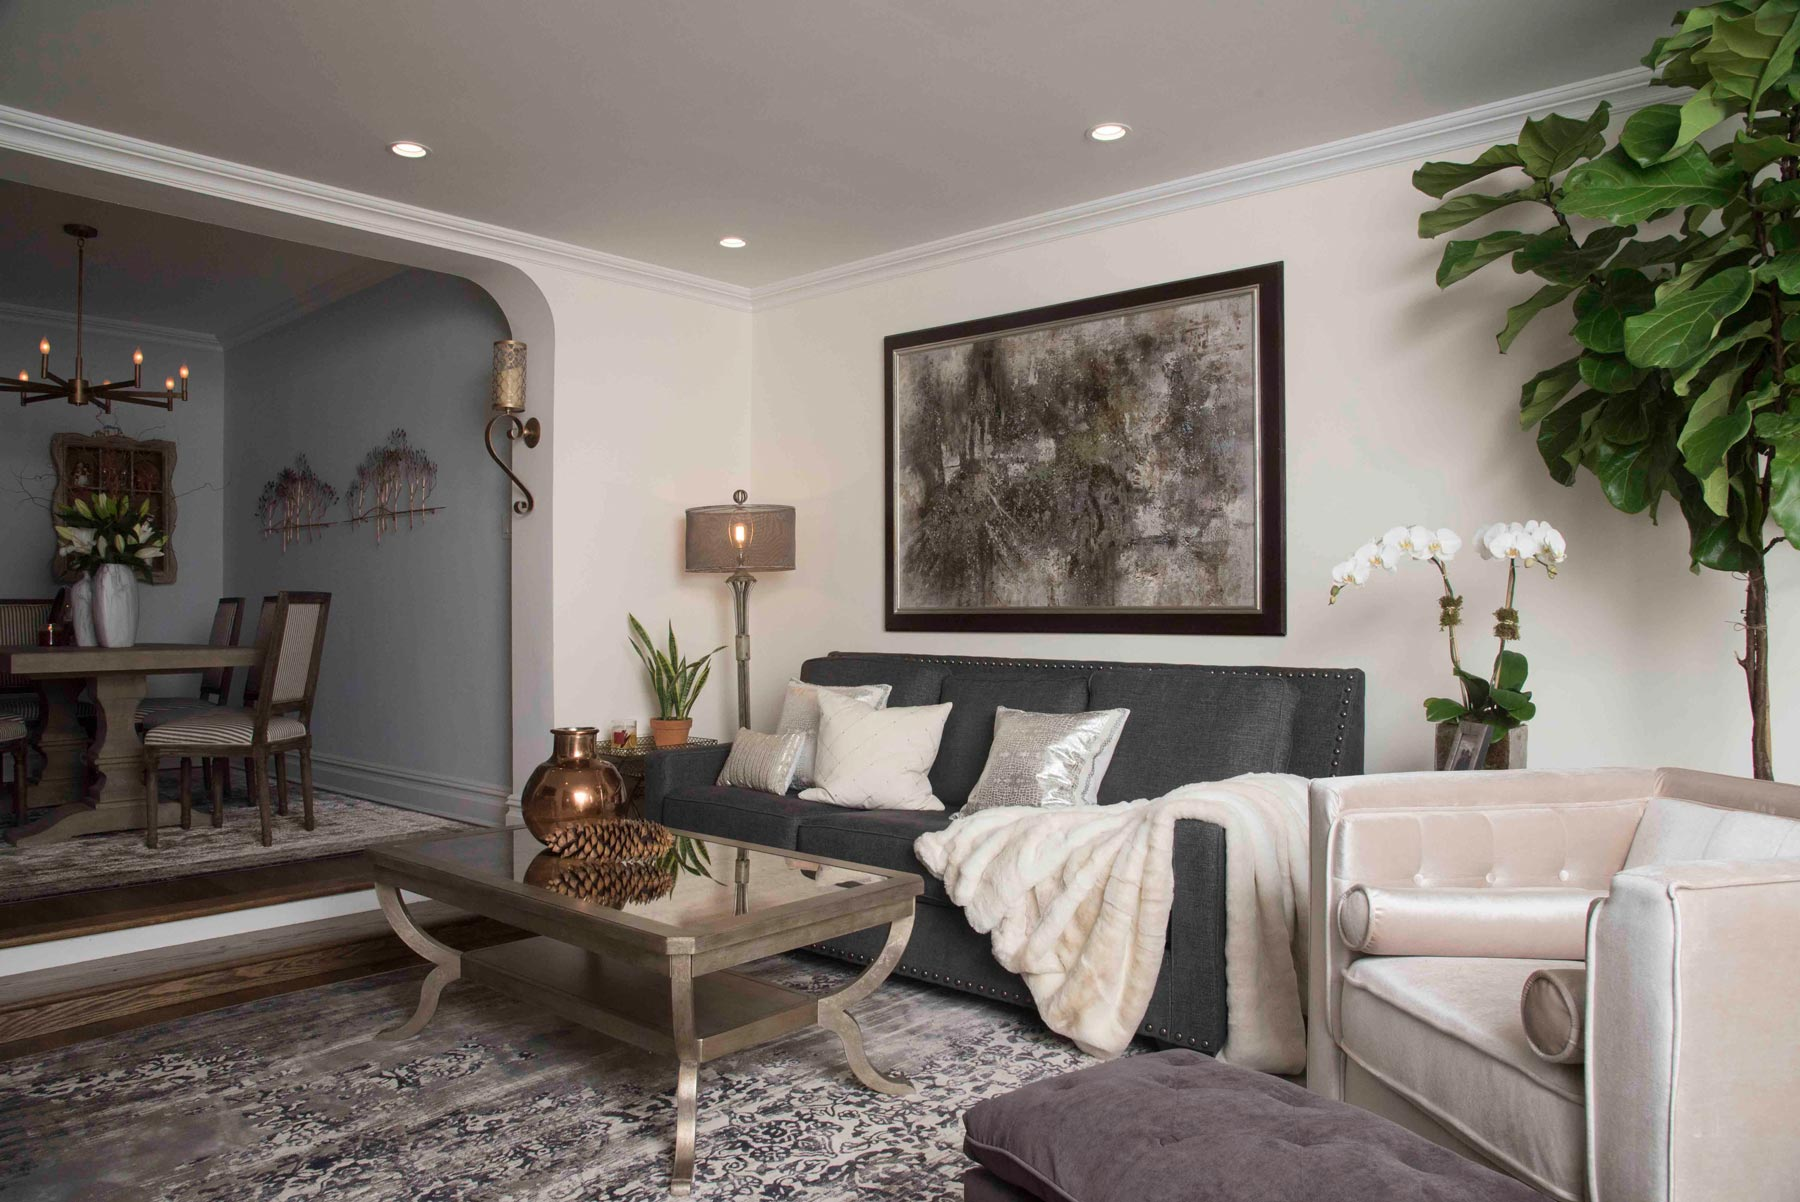 Image of Upper Eastside apartment interior design project by Anastasios Interiors